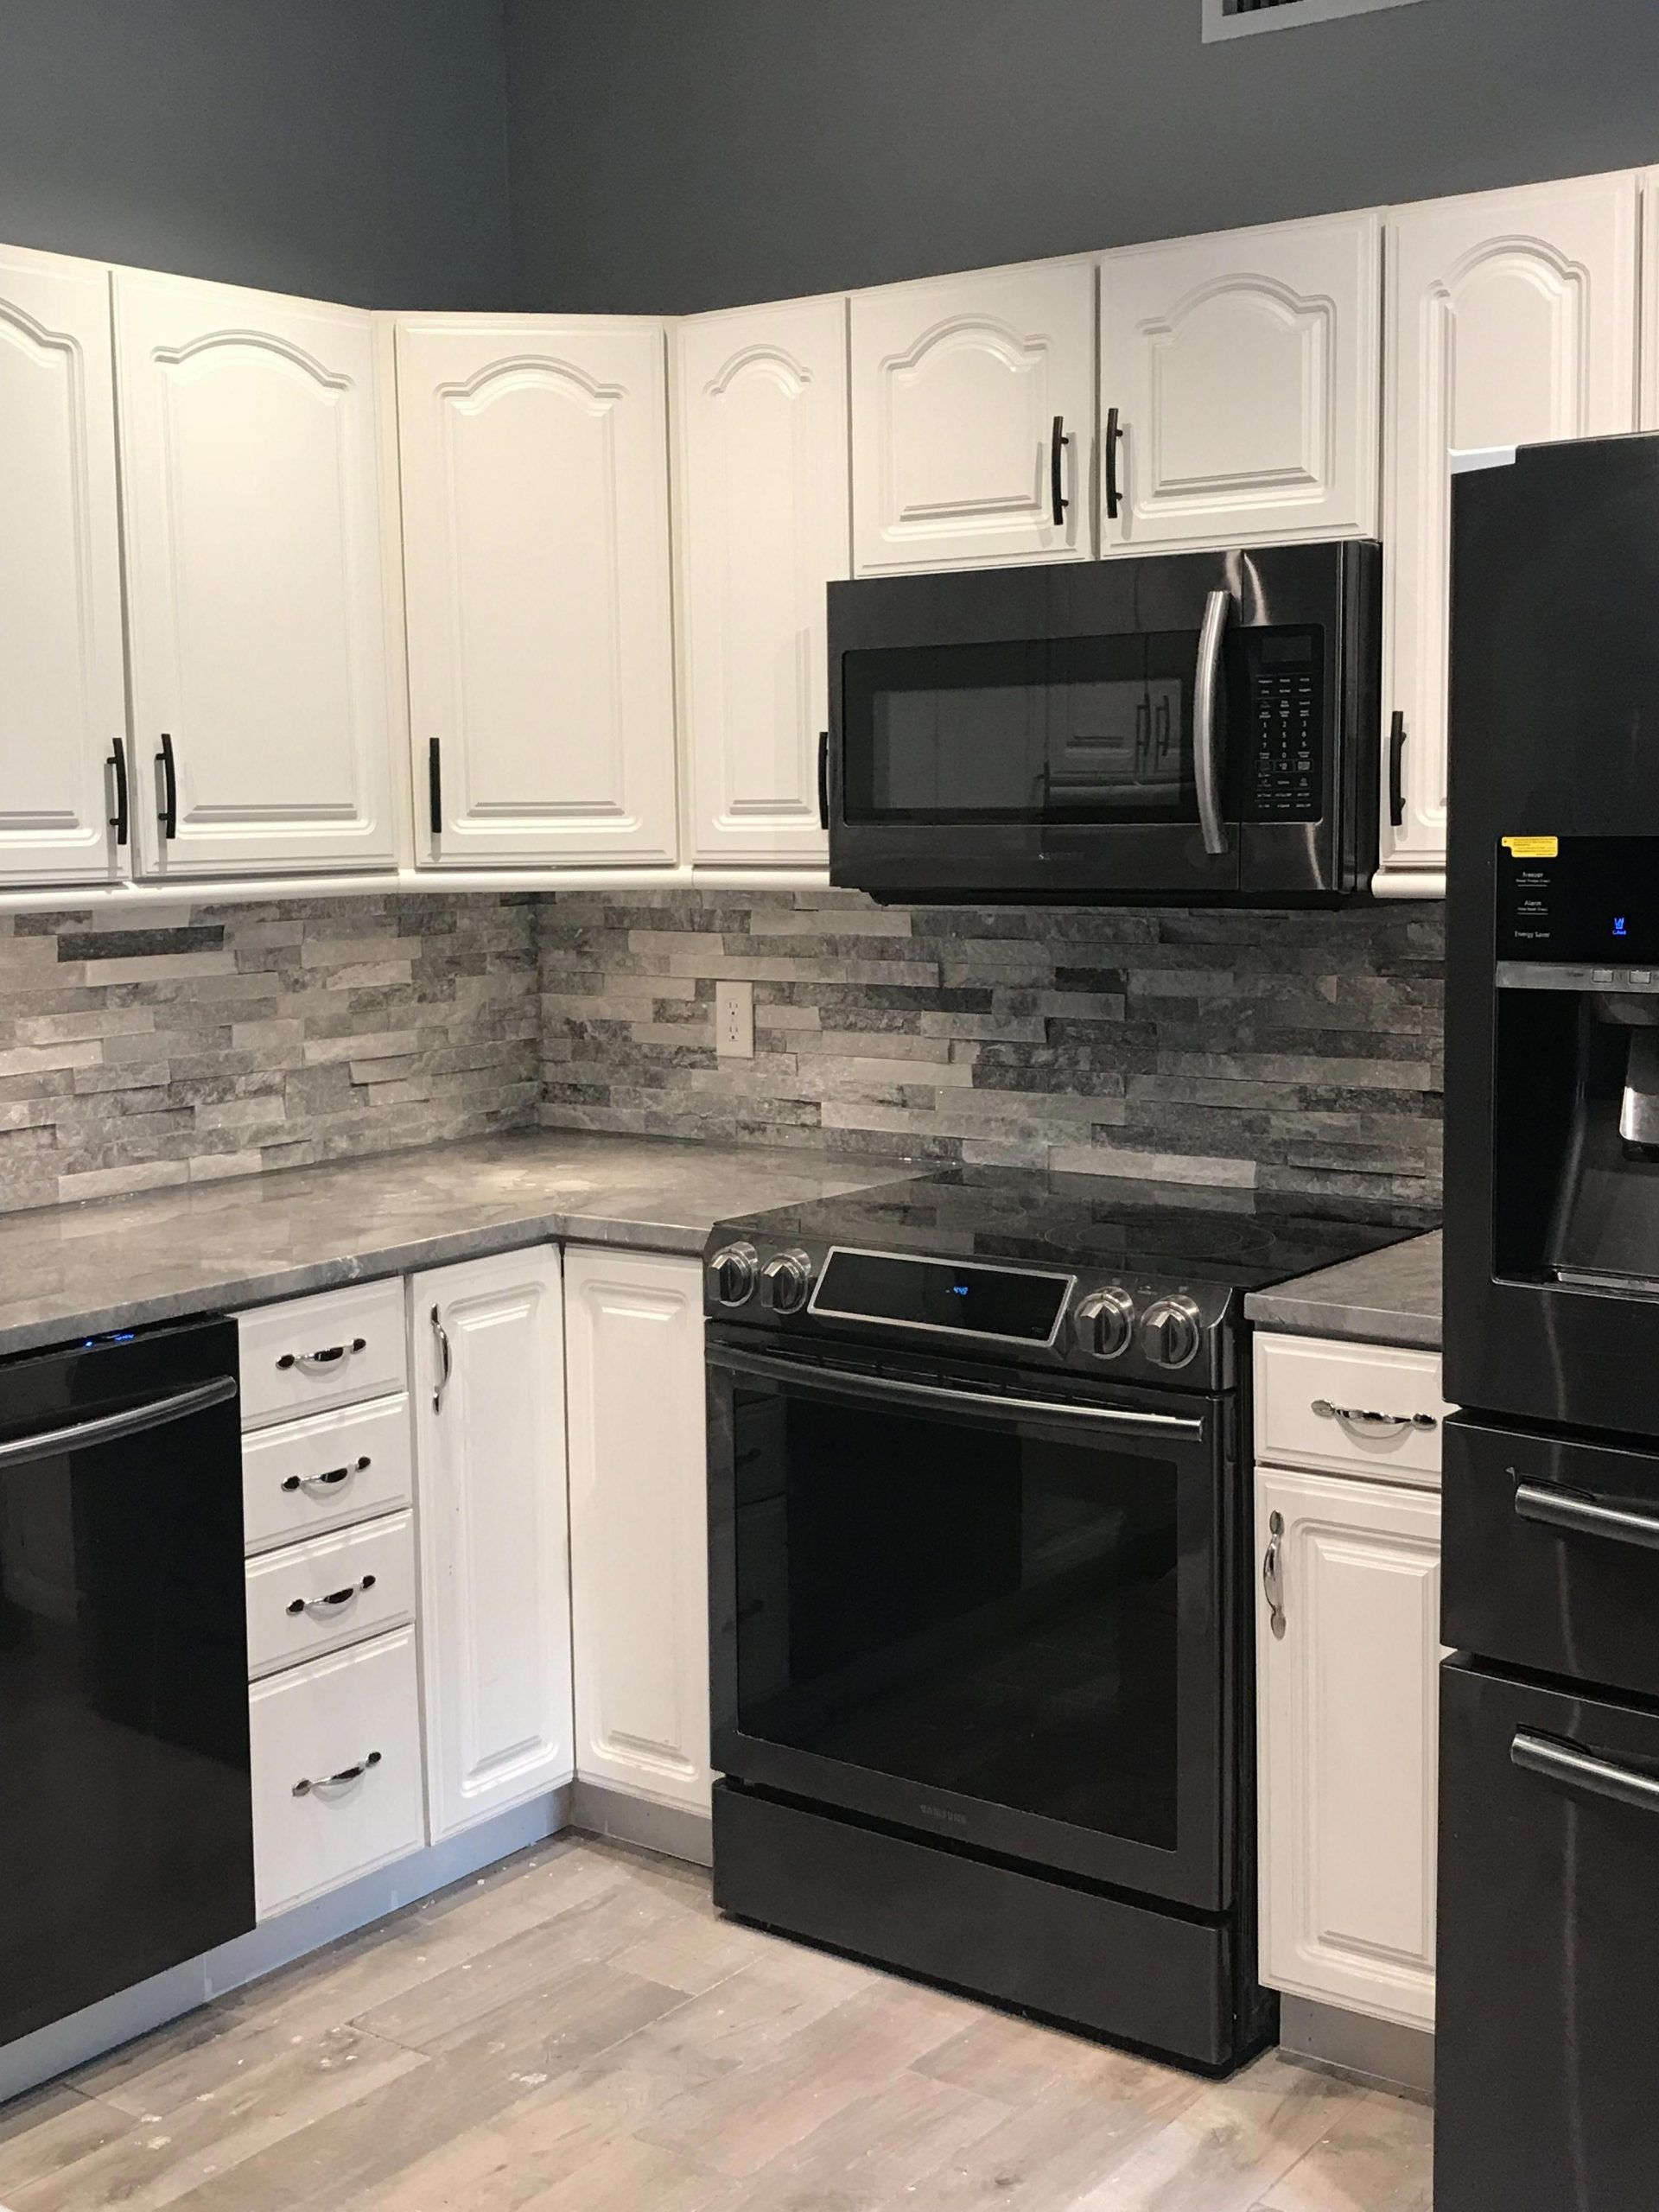 Black Kitchen Cabinet With Black Appliance Awesome Stackstone Backsplash Black Stain In 2020 Concrete Countertops Kitchen Kitchen Color White Appliances White Cabinets